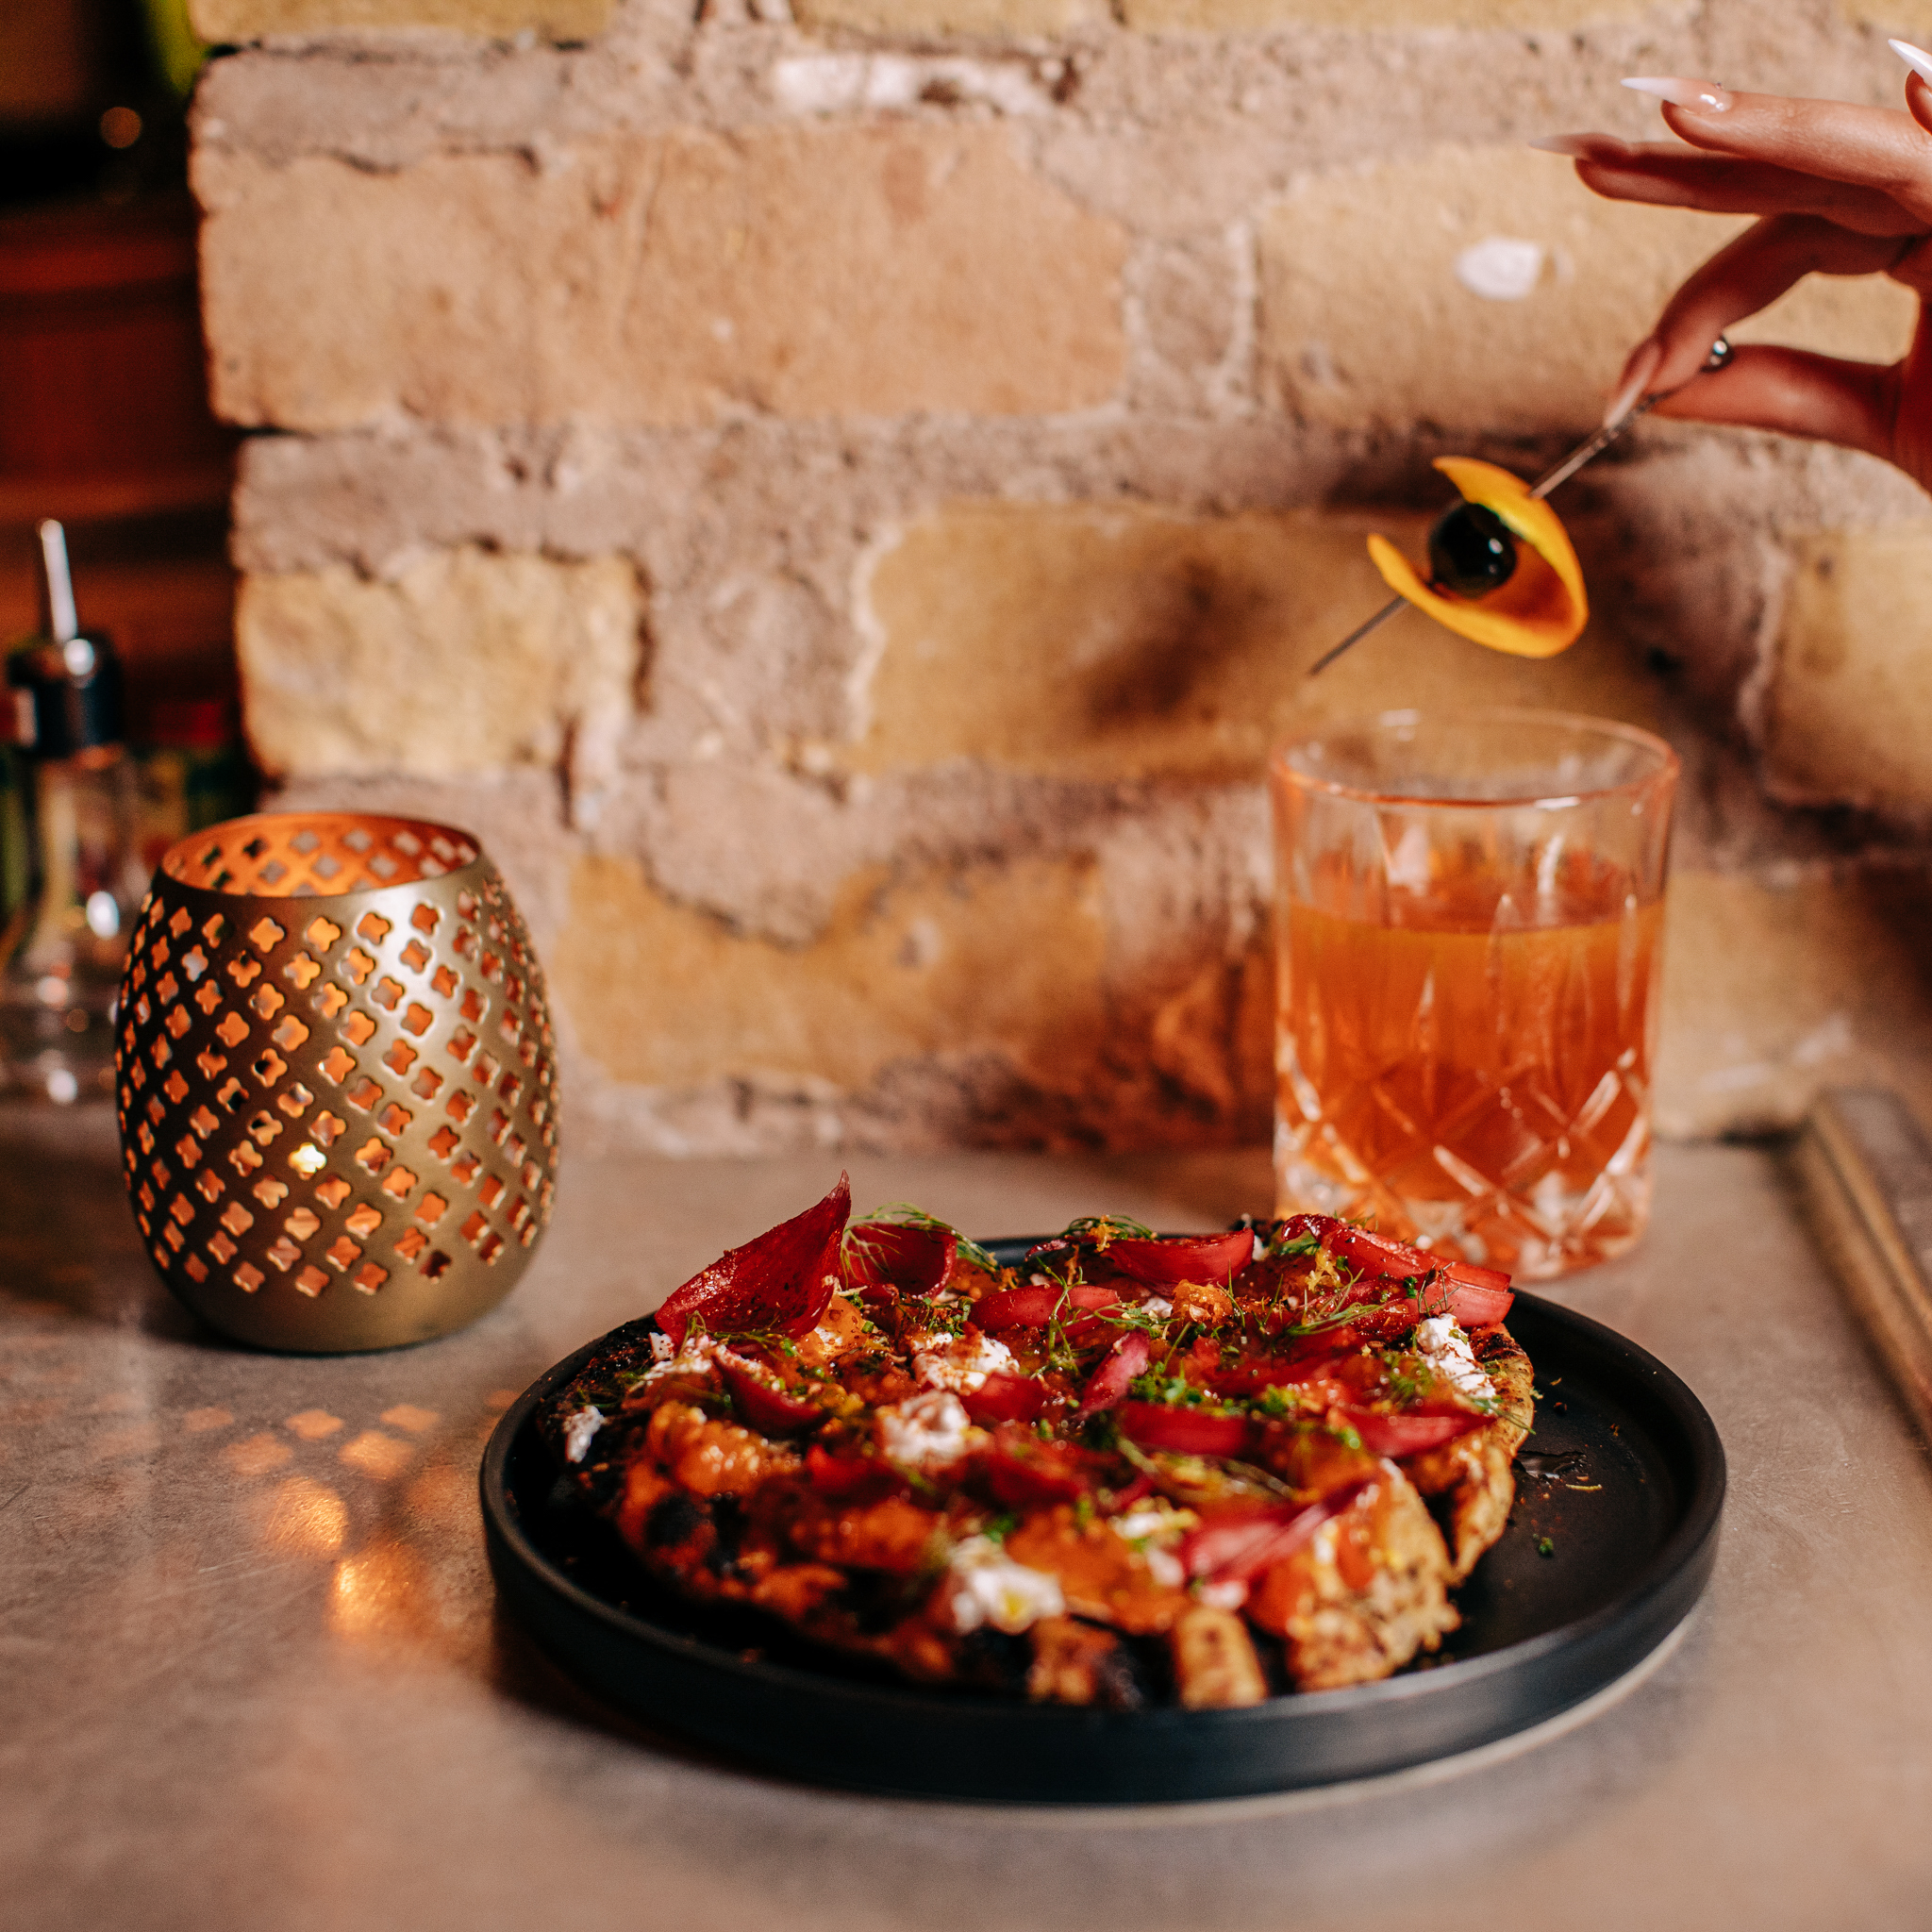 Flatbread with labneh, an orange cocktail, and a gold candleholder in front of a brick wall